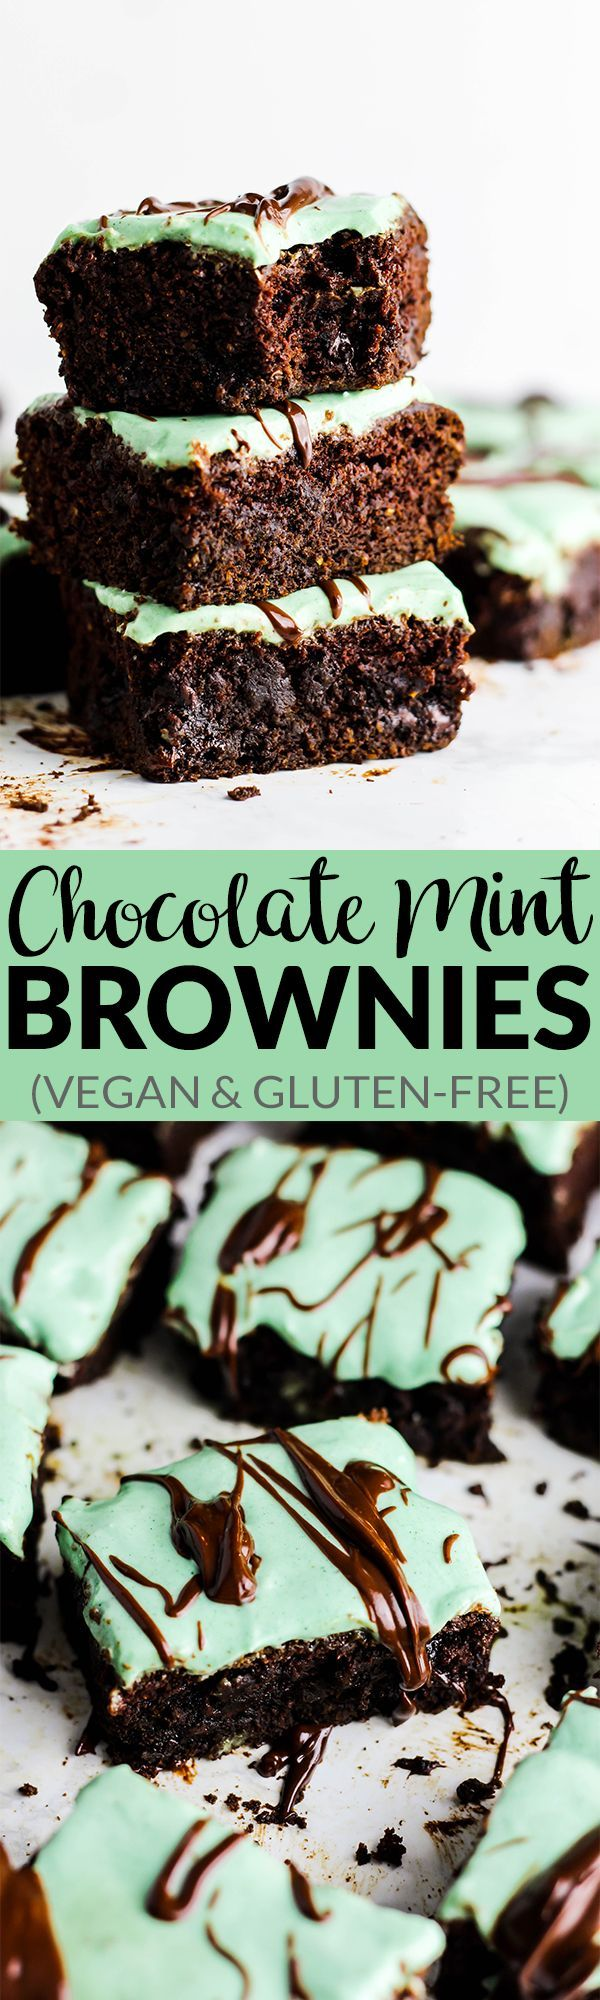 Your favorite healthy brownie recipe just got better! These Chocolate Mint Brownies are dense, chocolate-y & full of fresh mint flavor. Vegan & gluten-free!